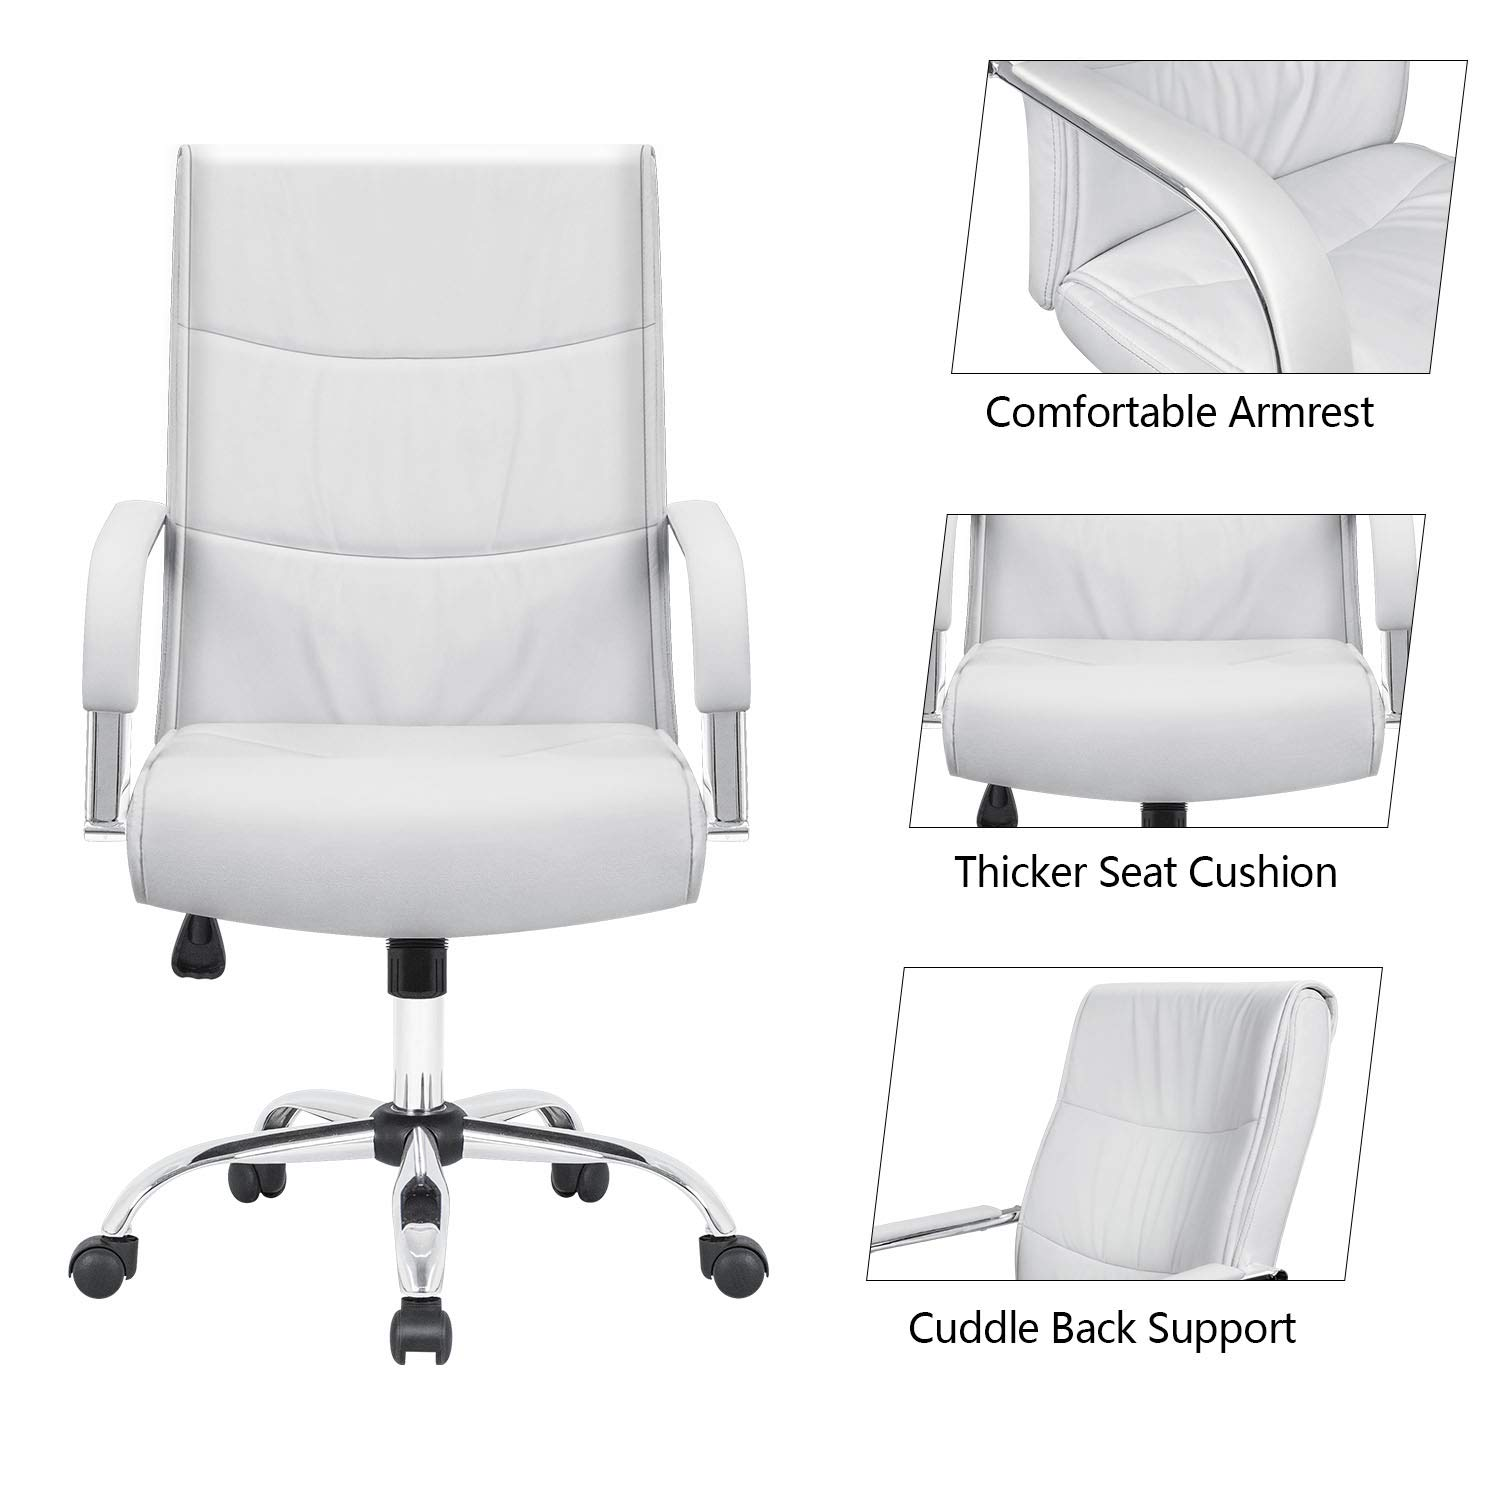 Furmax High Back Office Desk Chair Conference Leather Executive with Padded Armrests,Adjustable Ergonomic Swivel Task Chair with Lumbar Support(White) by Furmax (Image #3)